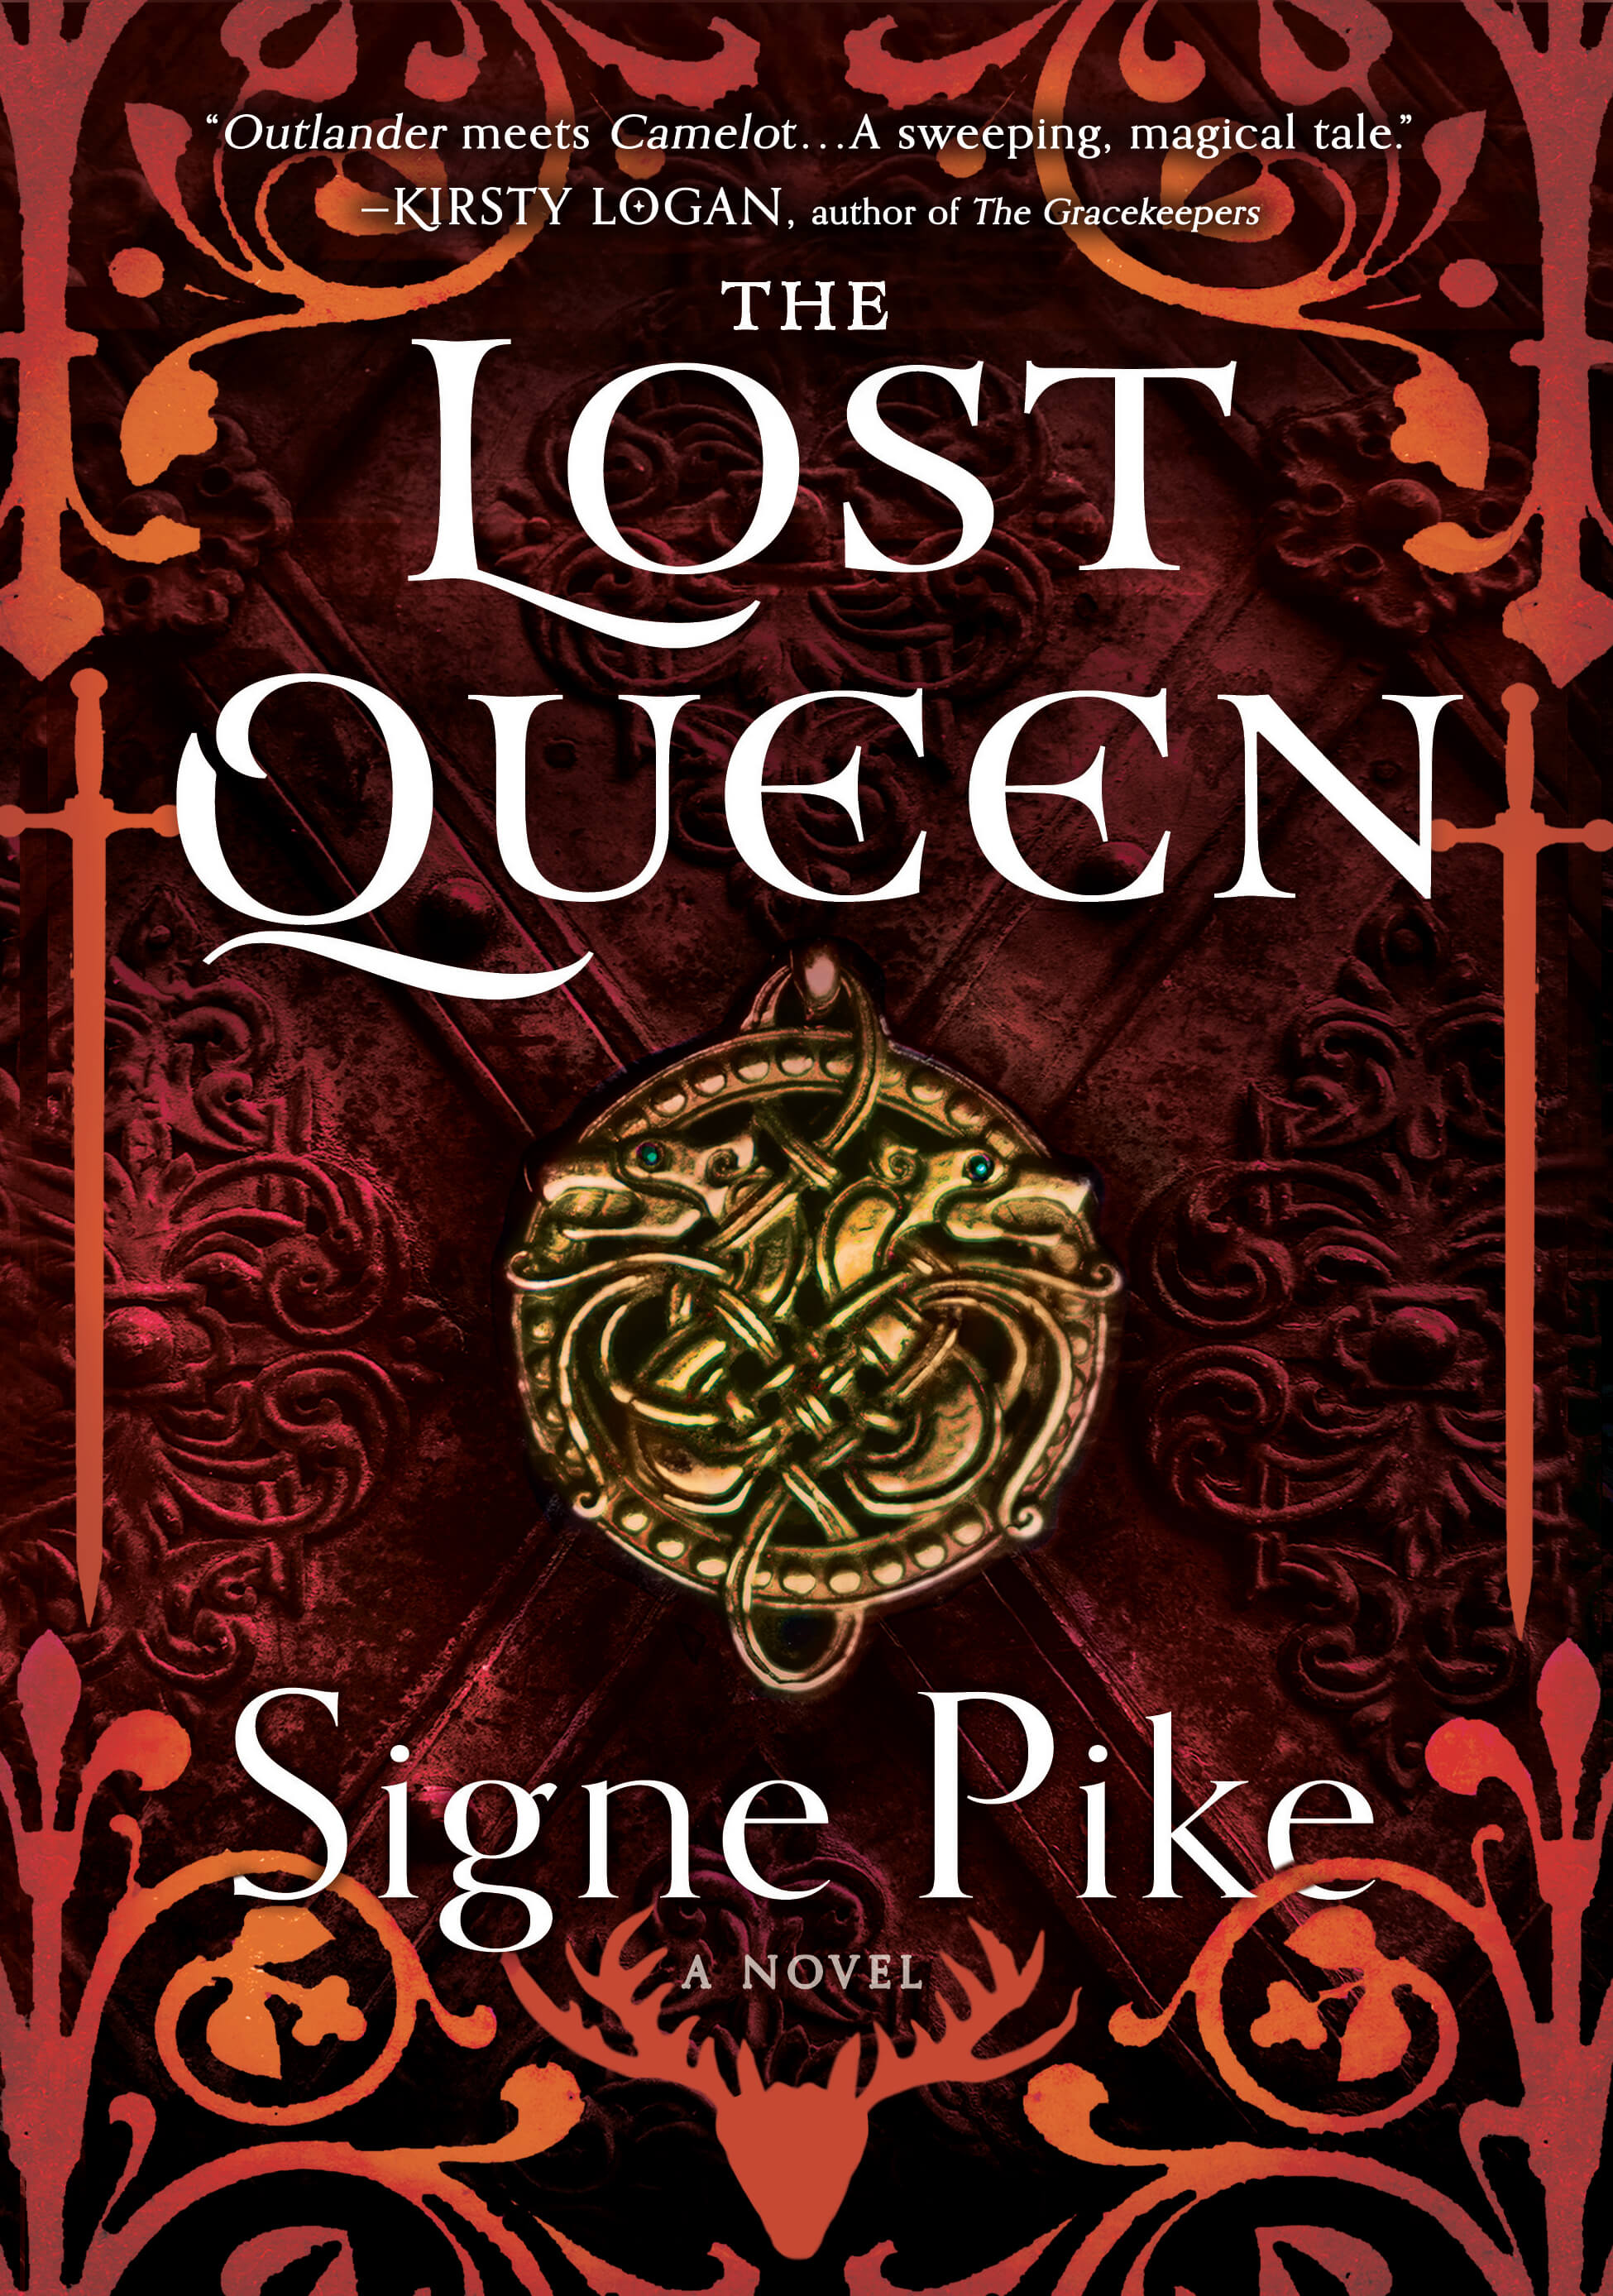 Local Author Signe Pike describes Dewees